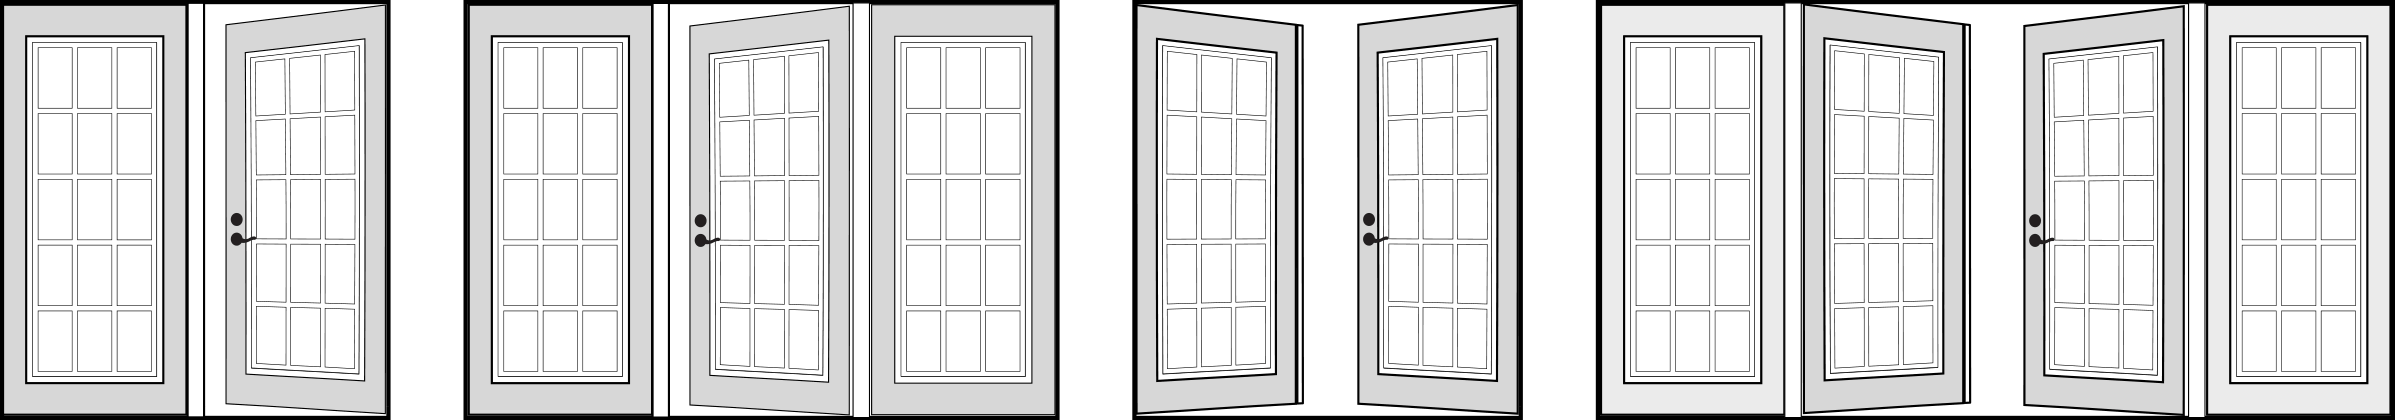 A look at the different garden door configurations offered by Consumer's Choice Window & Doors